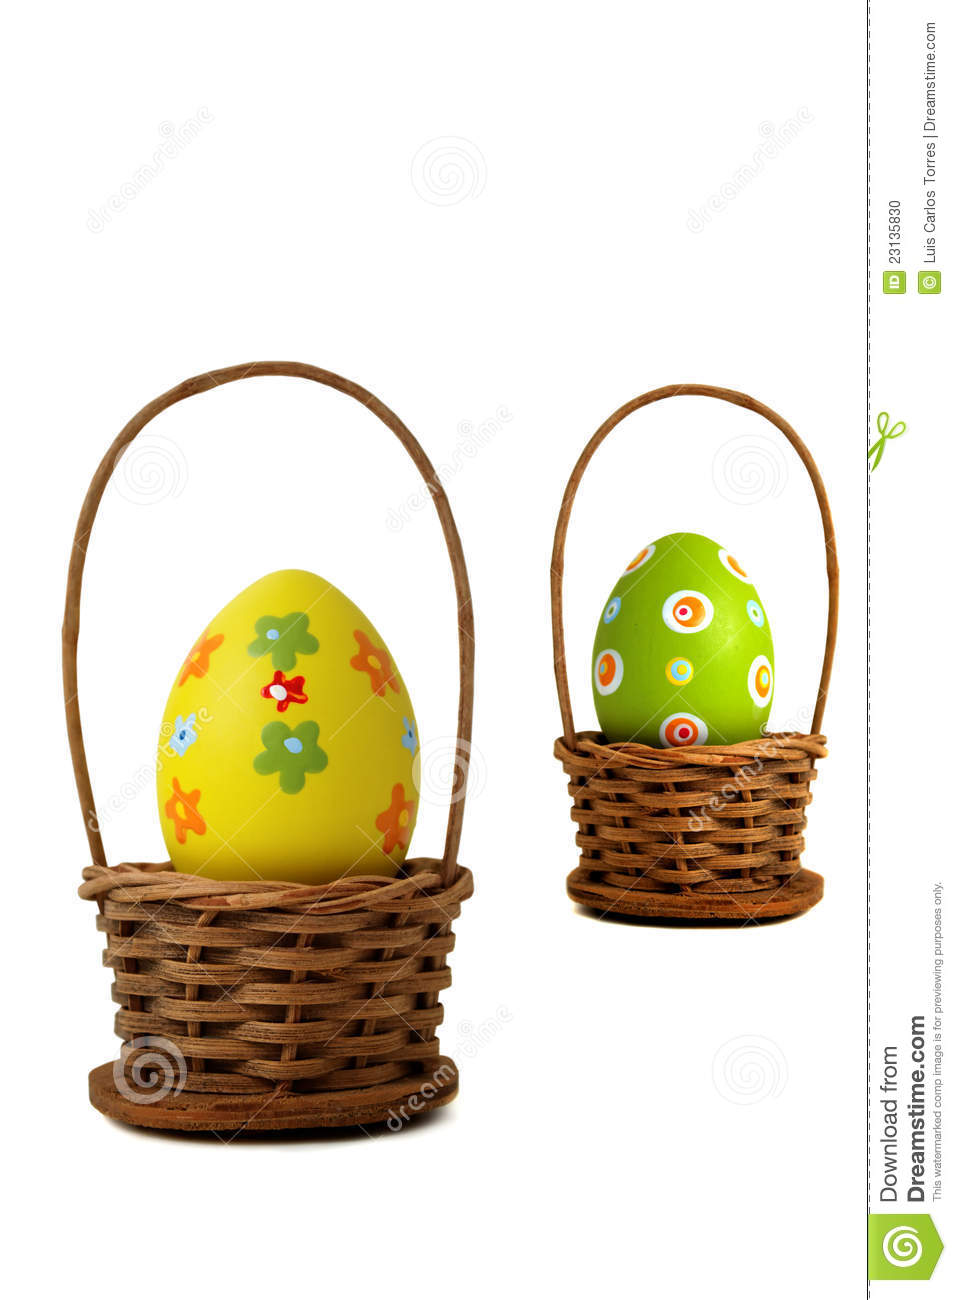 Near yellow Easter egg into a basket